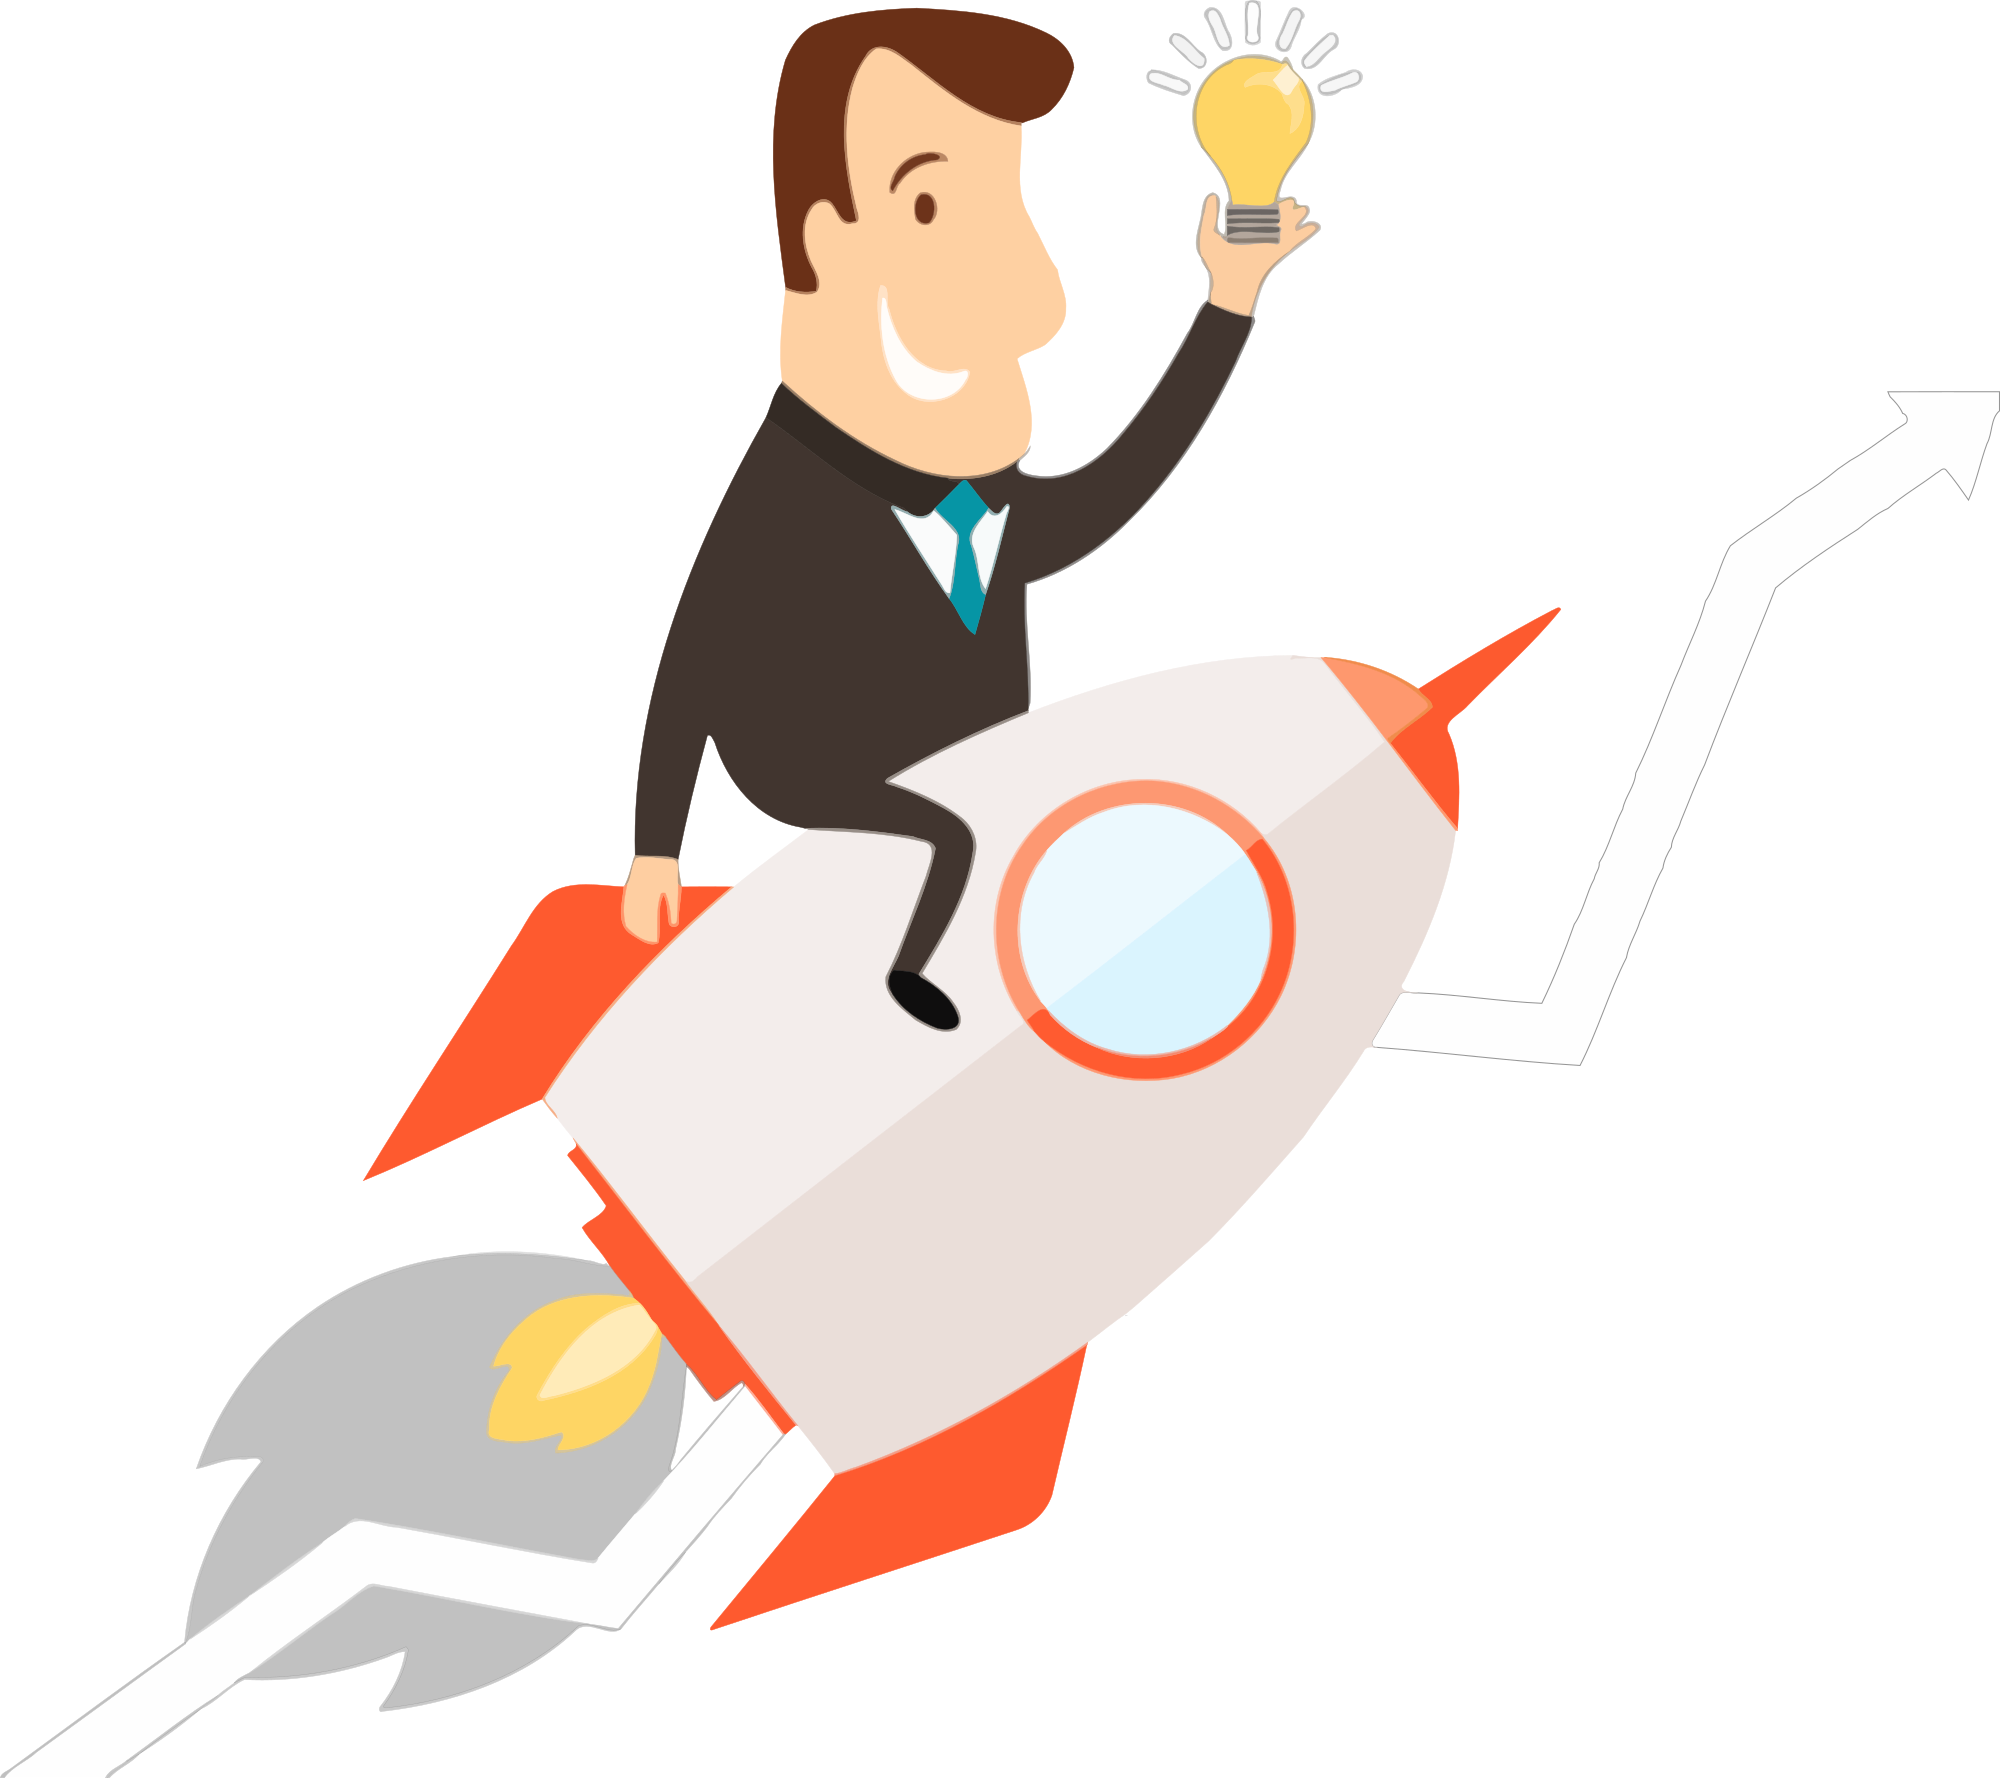 Space rocket clip art image search results clipart 3.